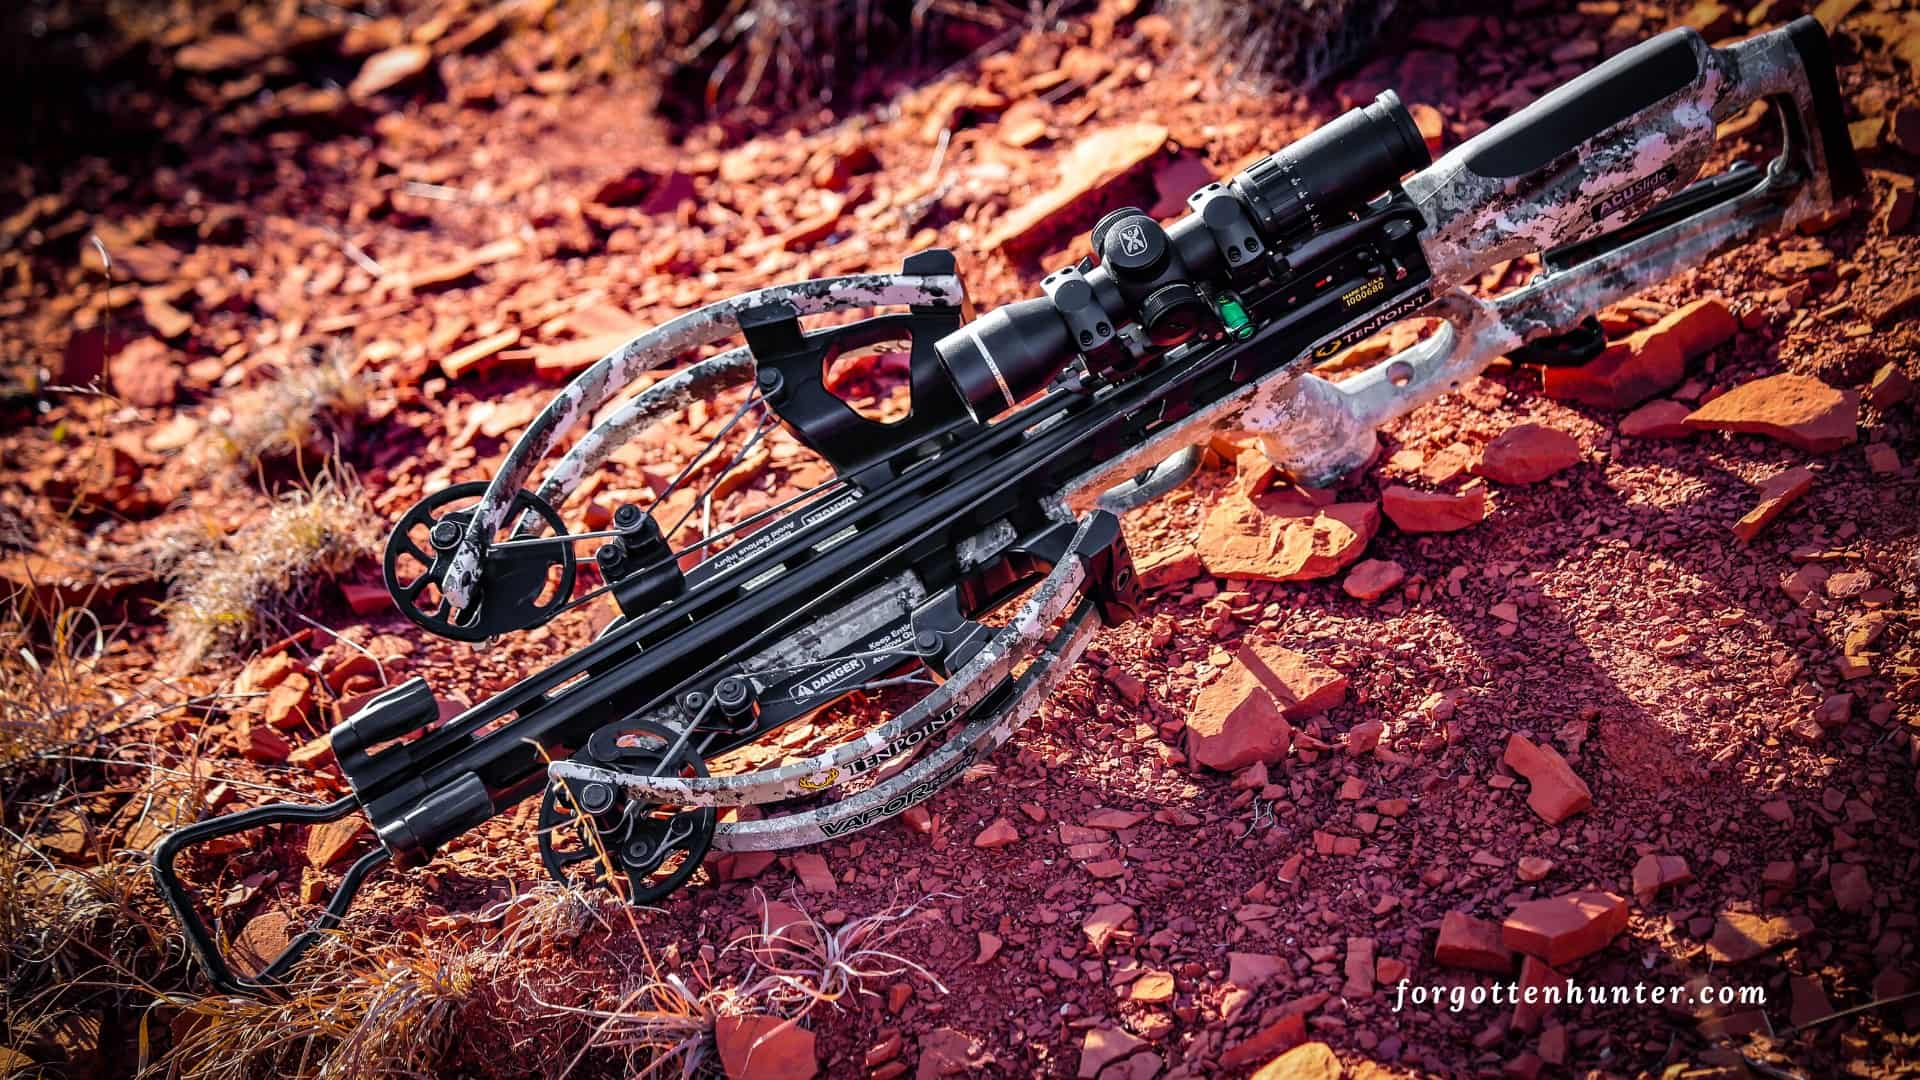 Top 5 Crossbows For Big Game Hunting in 2020